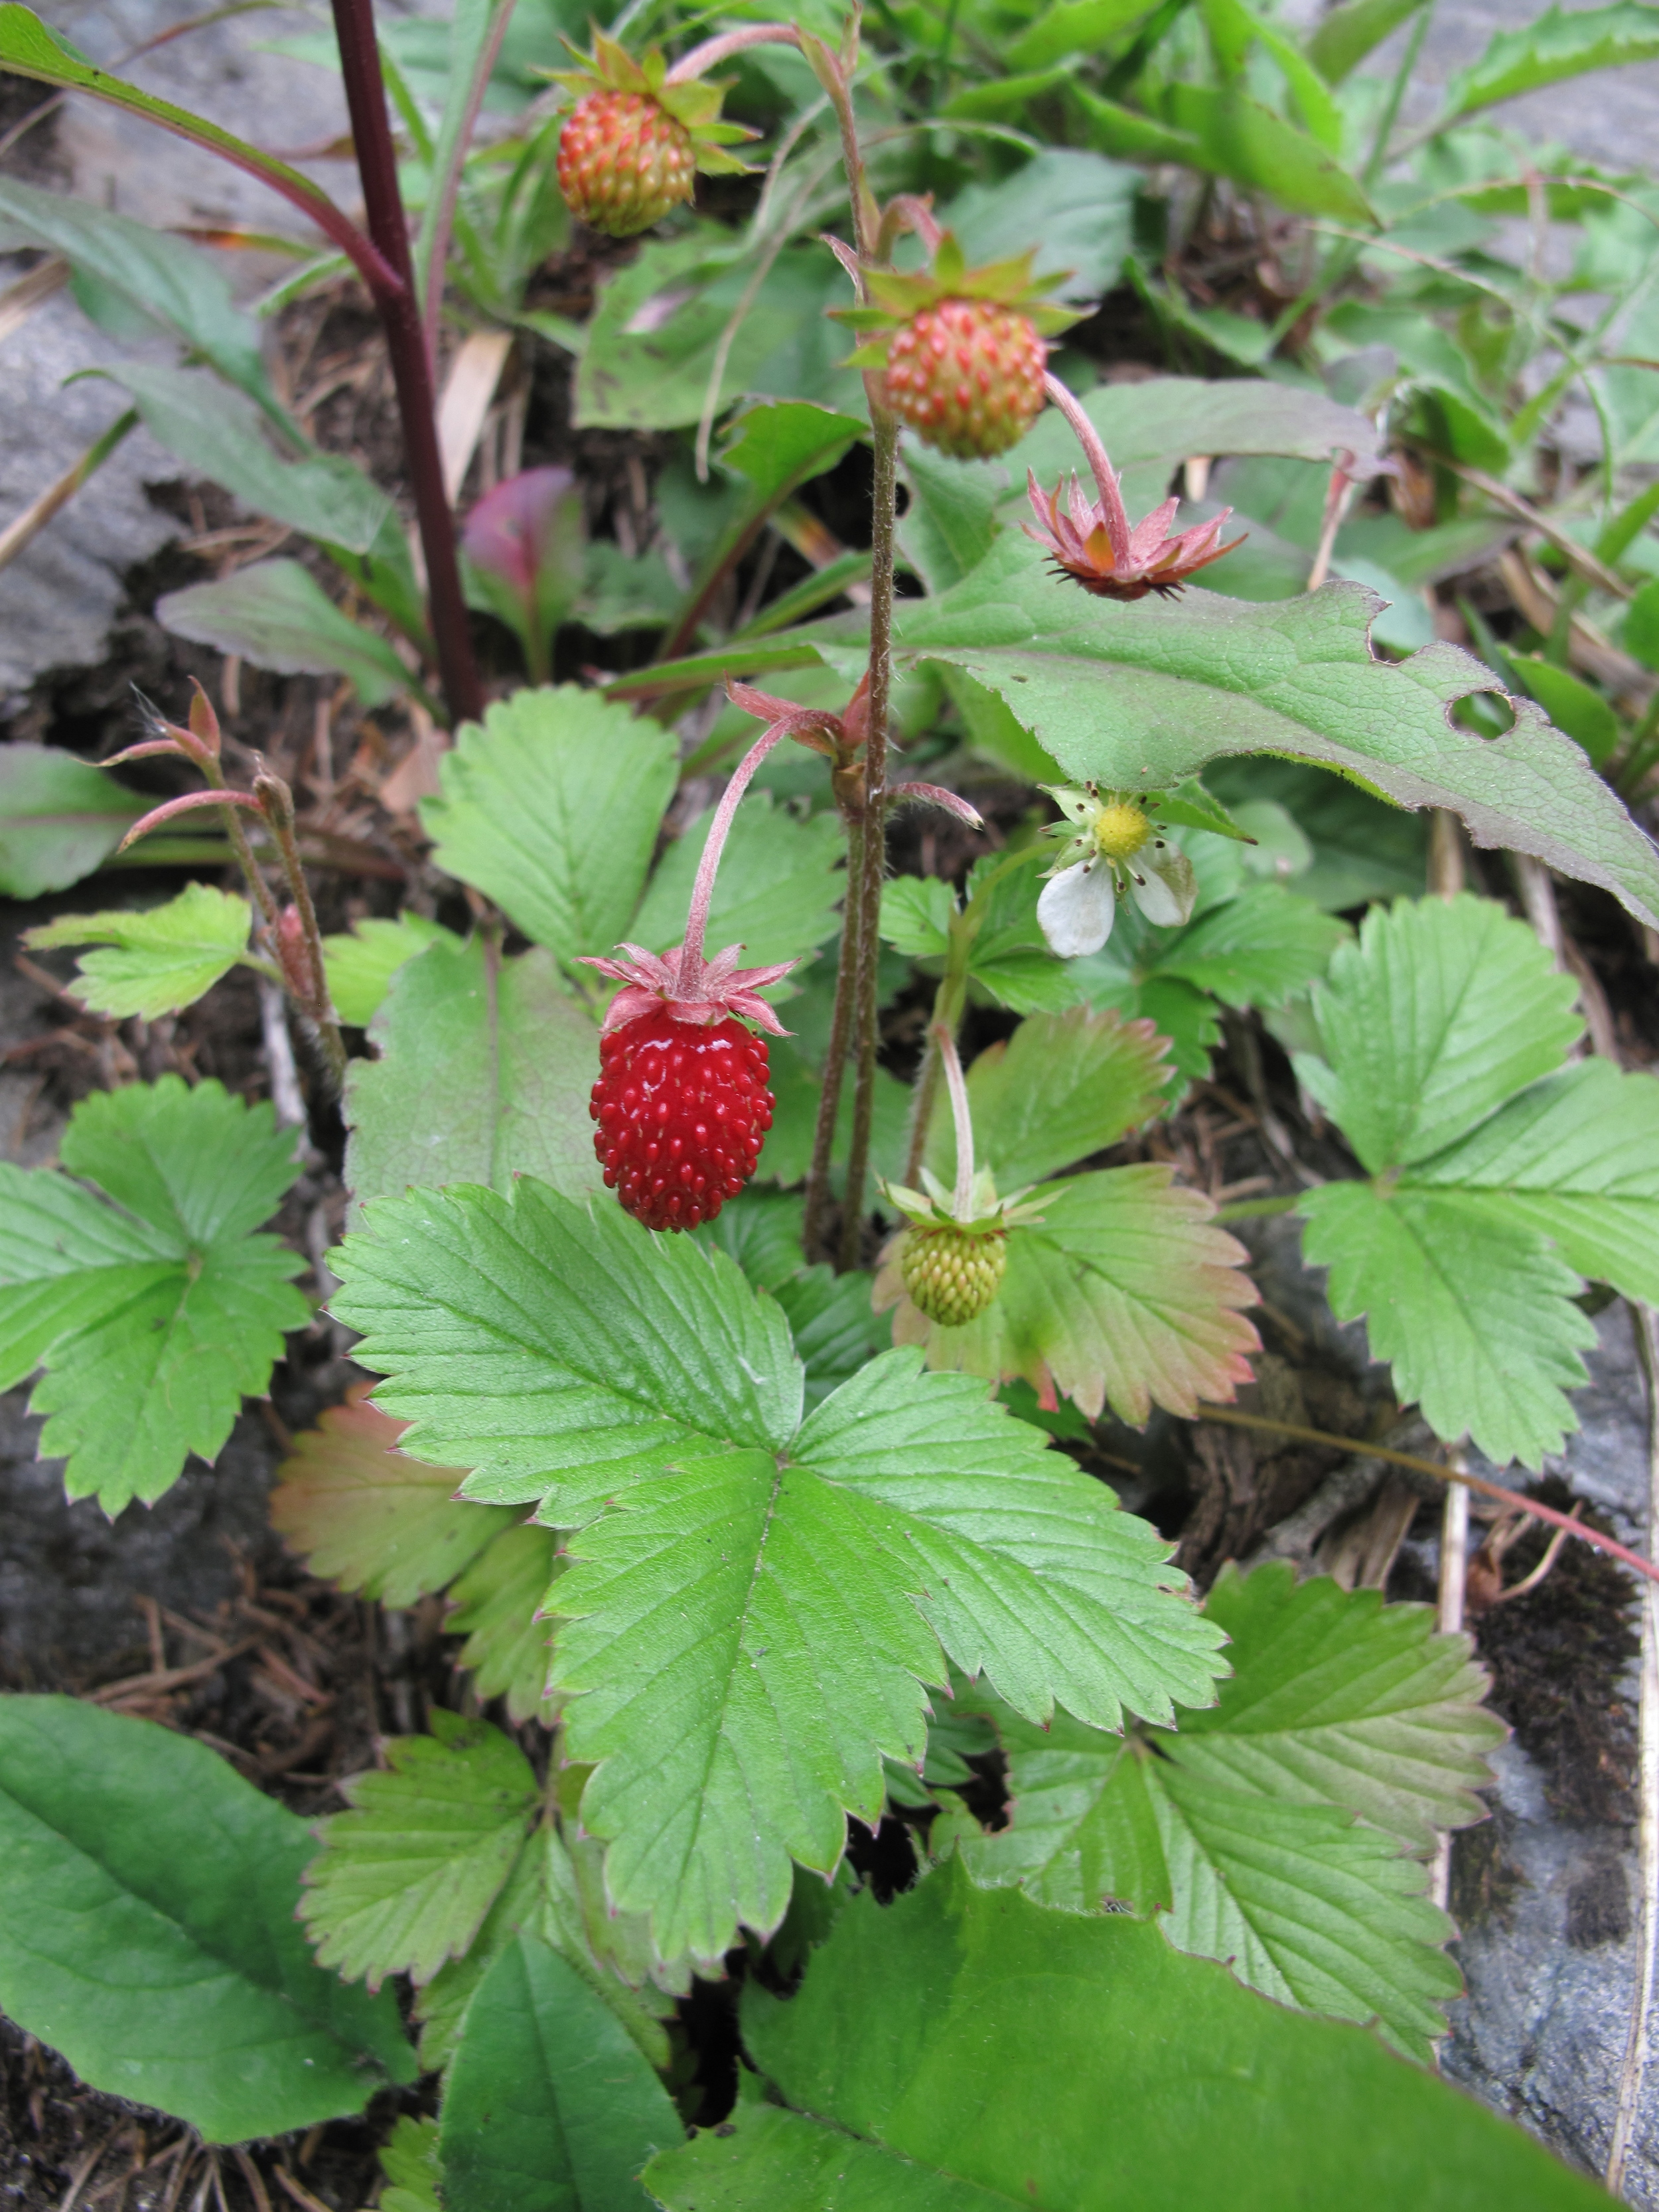 Tiny wild strawberries growing in the mountains of Austria.